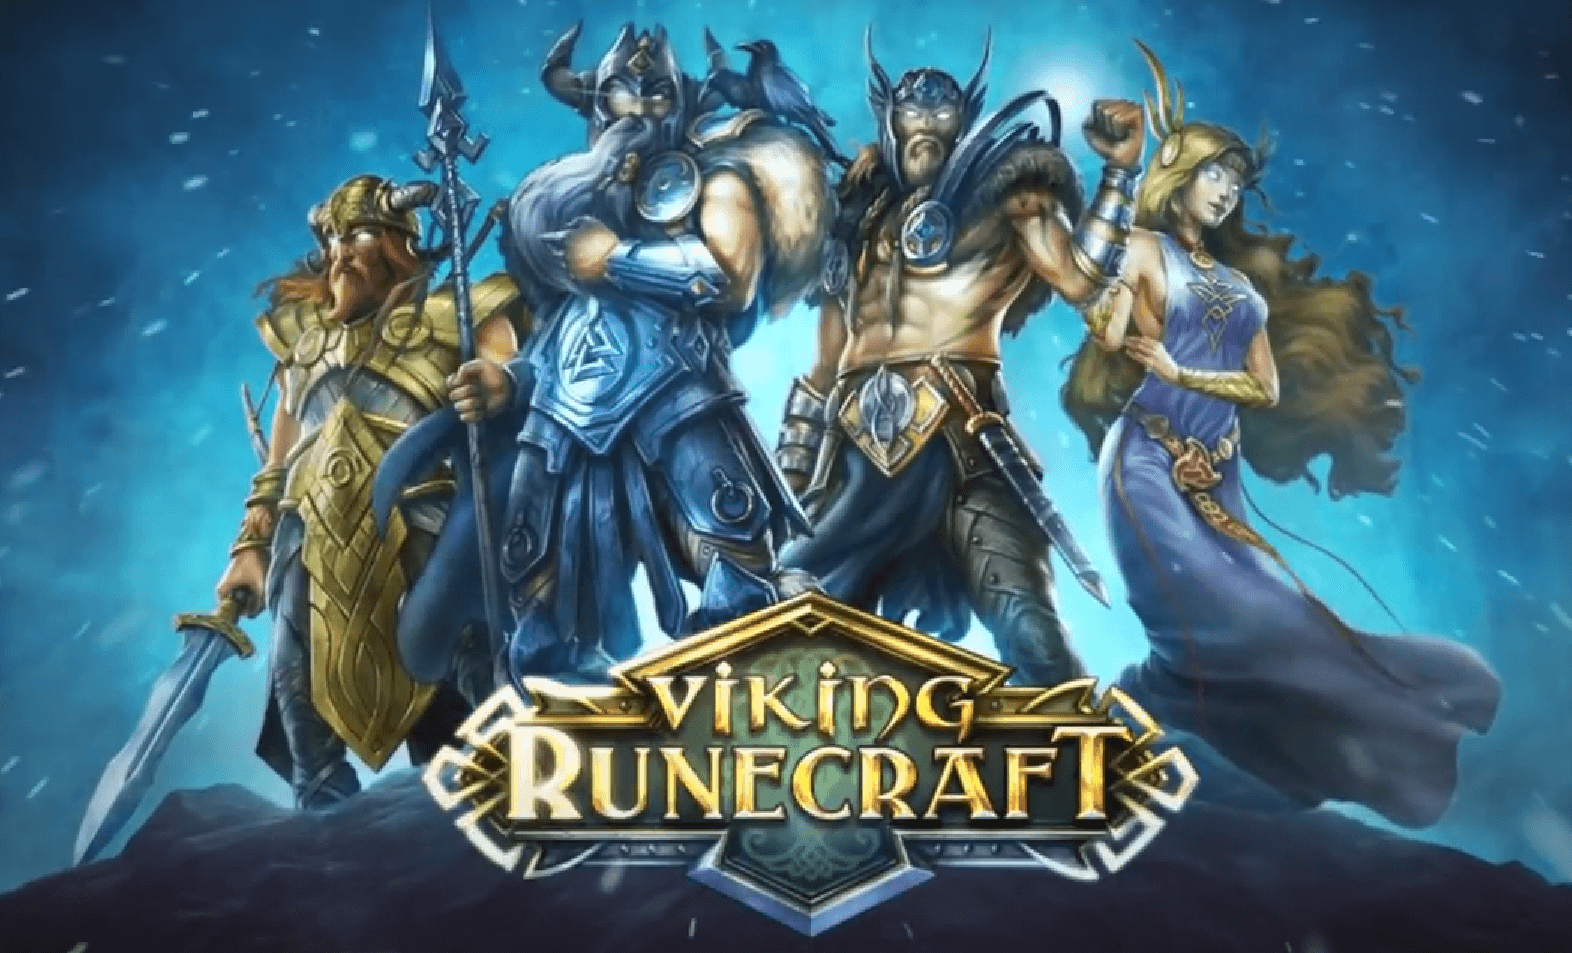 Viking runecraft free play pc games